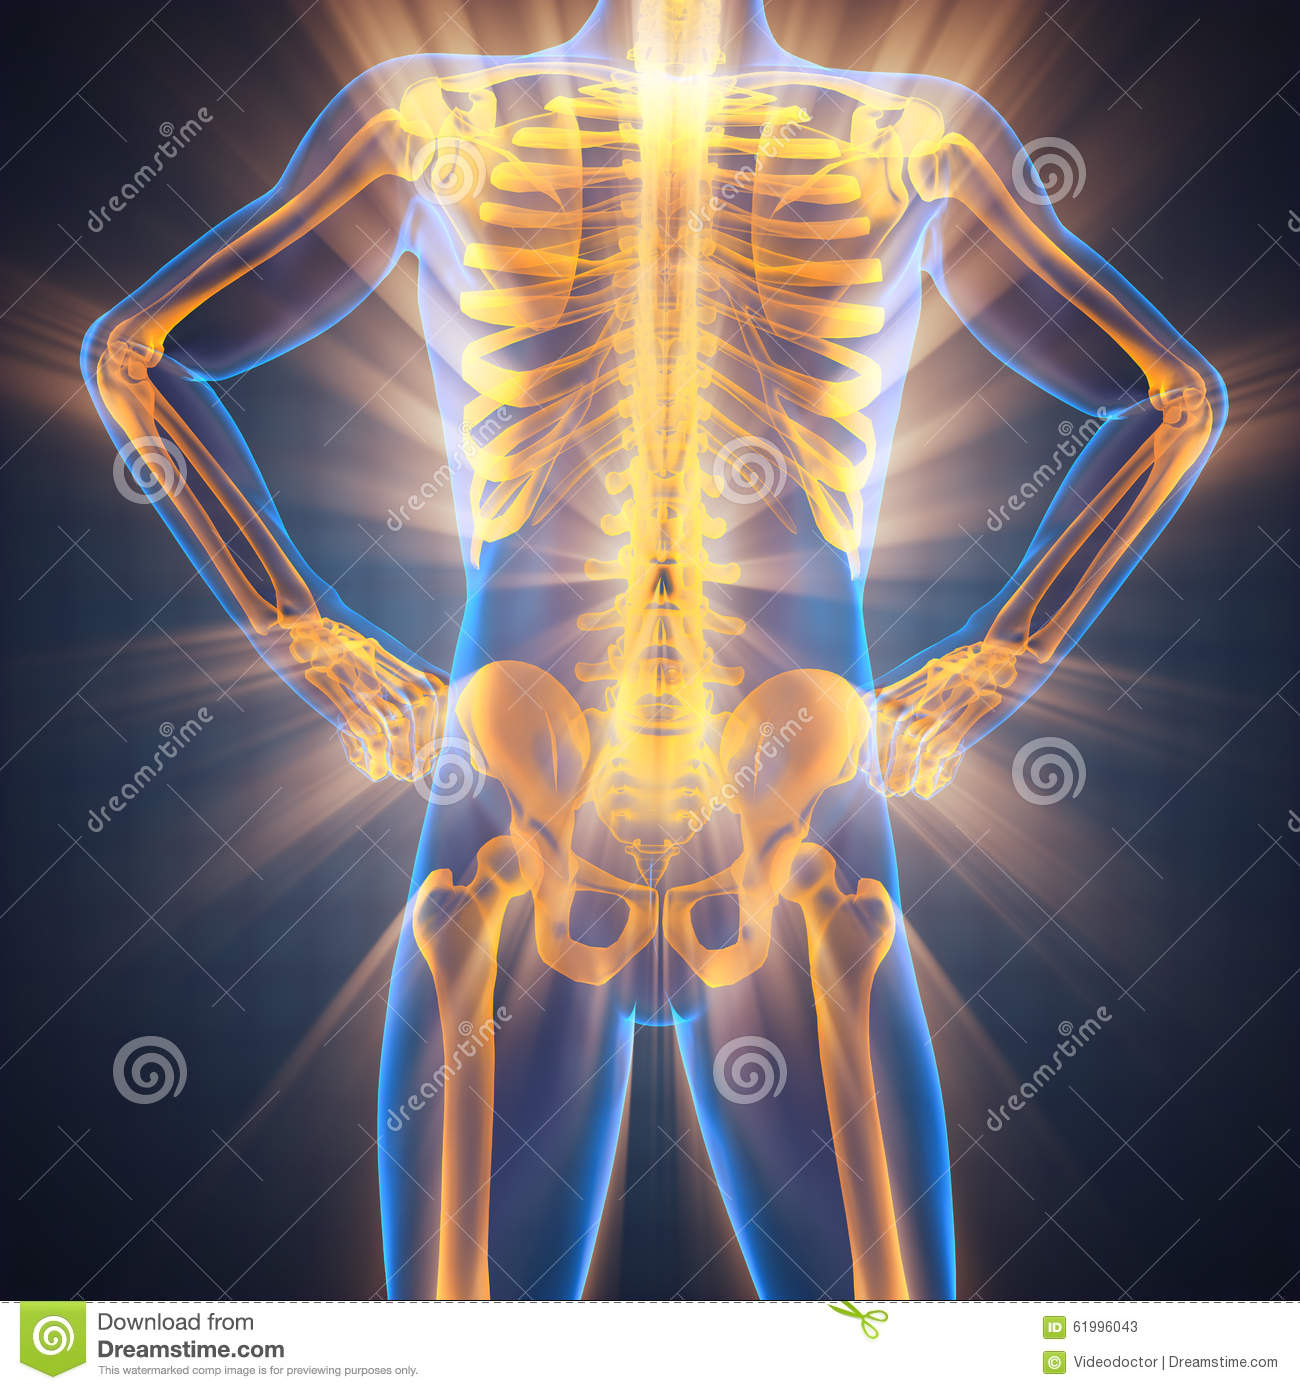 Human Bones Radiography Scan Image Stock Image Image Of Chest